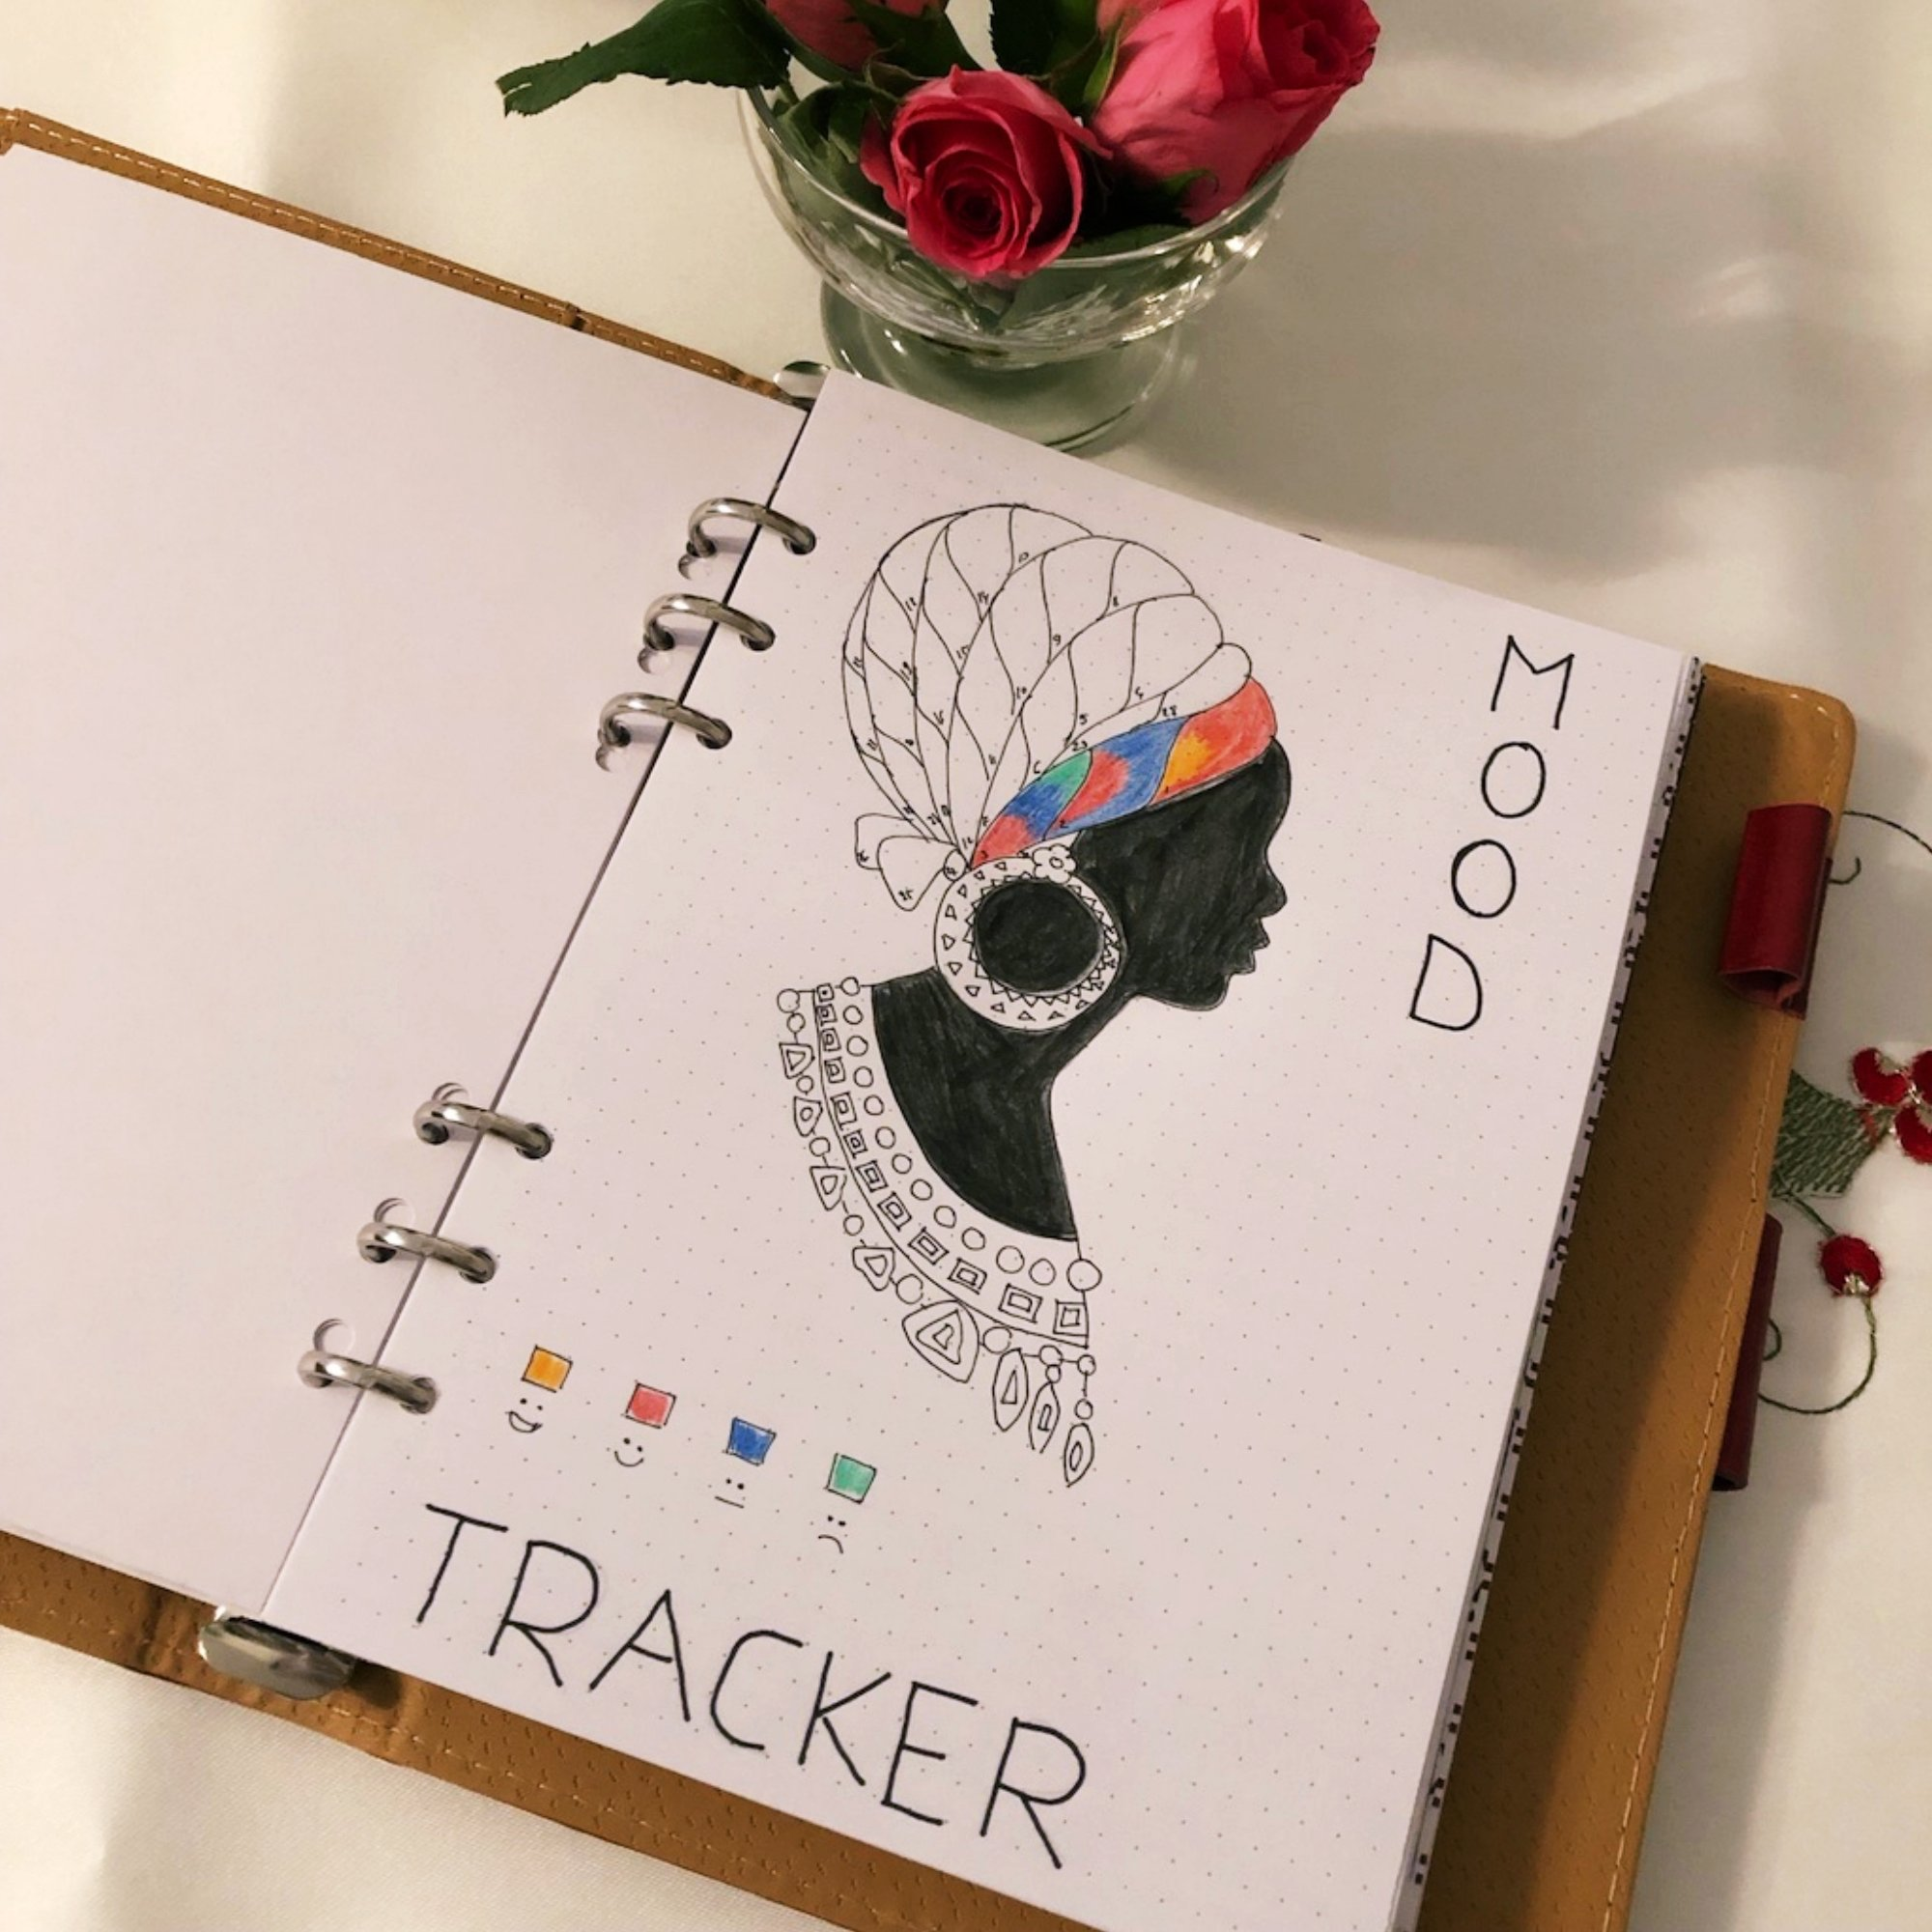 Mood tracker - Lady with a hair net - itstartswithacoffee.com #moodtracker #tracker #journaling #planning #creativejournal #creativejournaling